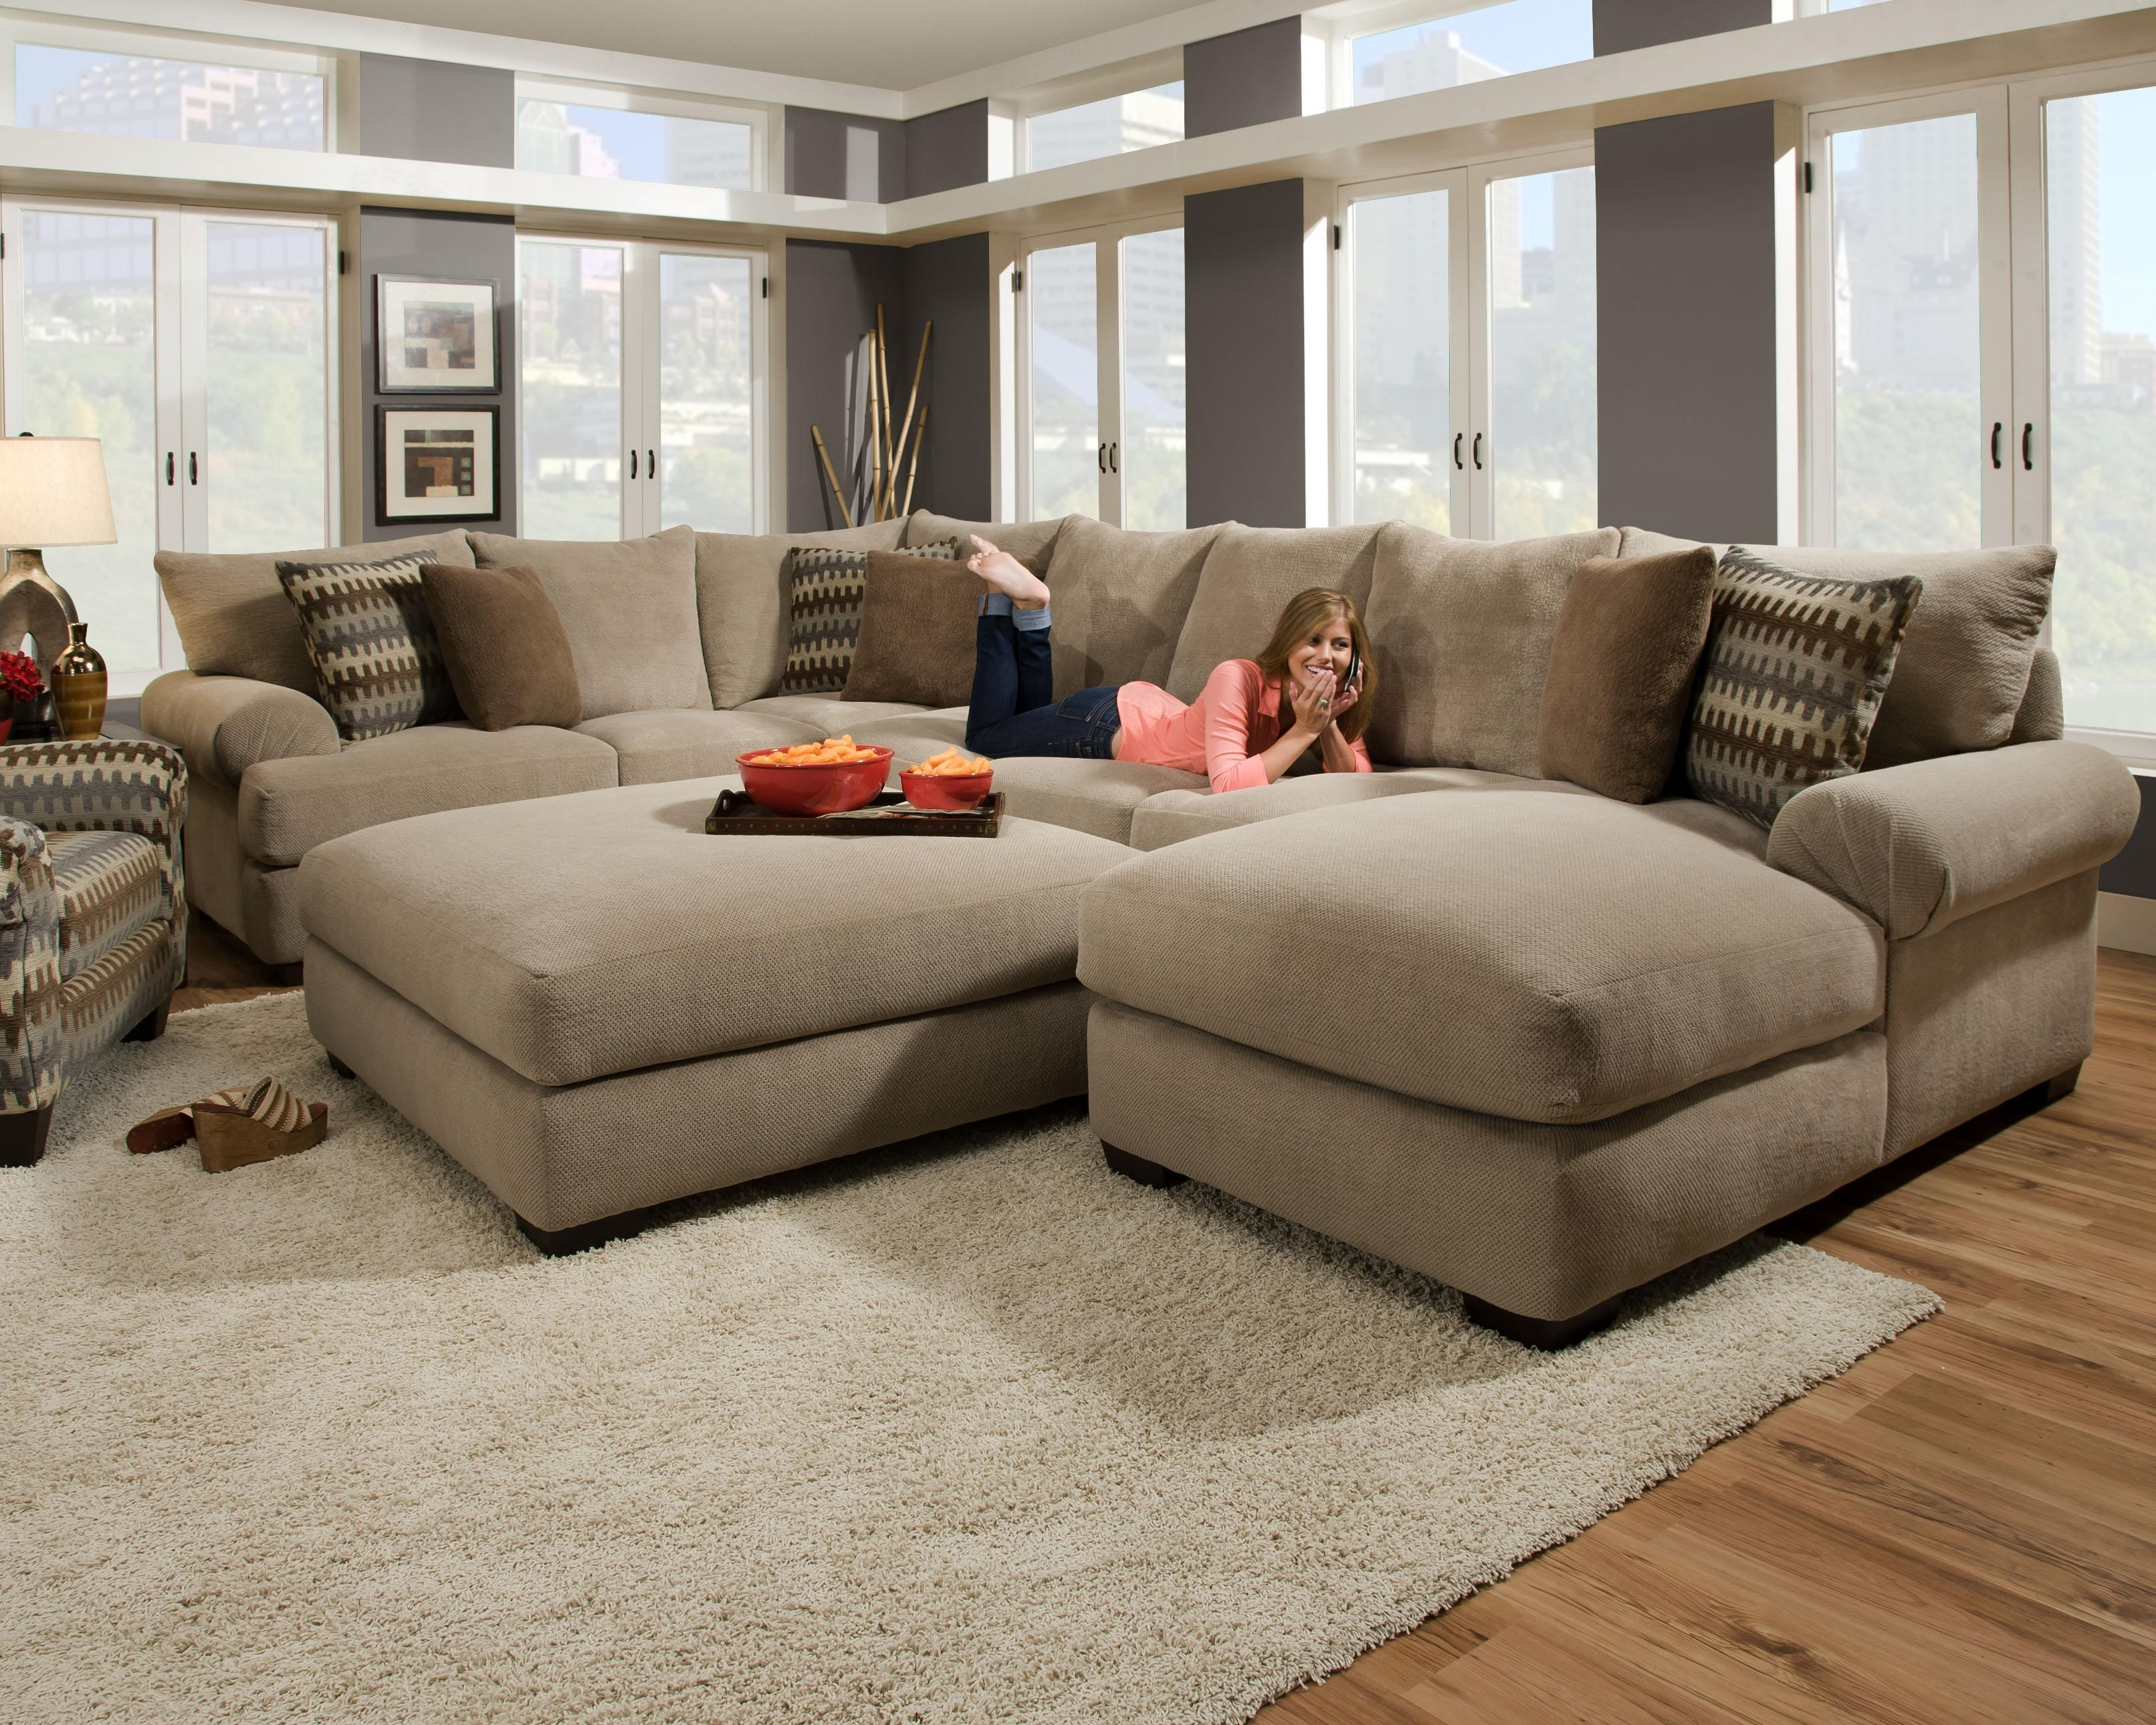 Ontario Canada Sectional Sofas Regarding Recent Sectional Sofas Under 1000 – Home Design Ideas And Pictures (View 9 of 20)